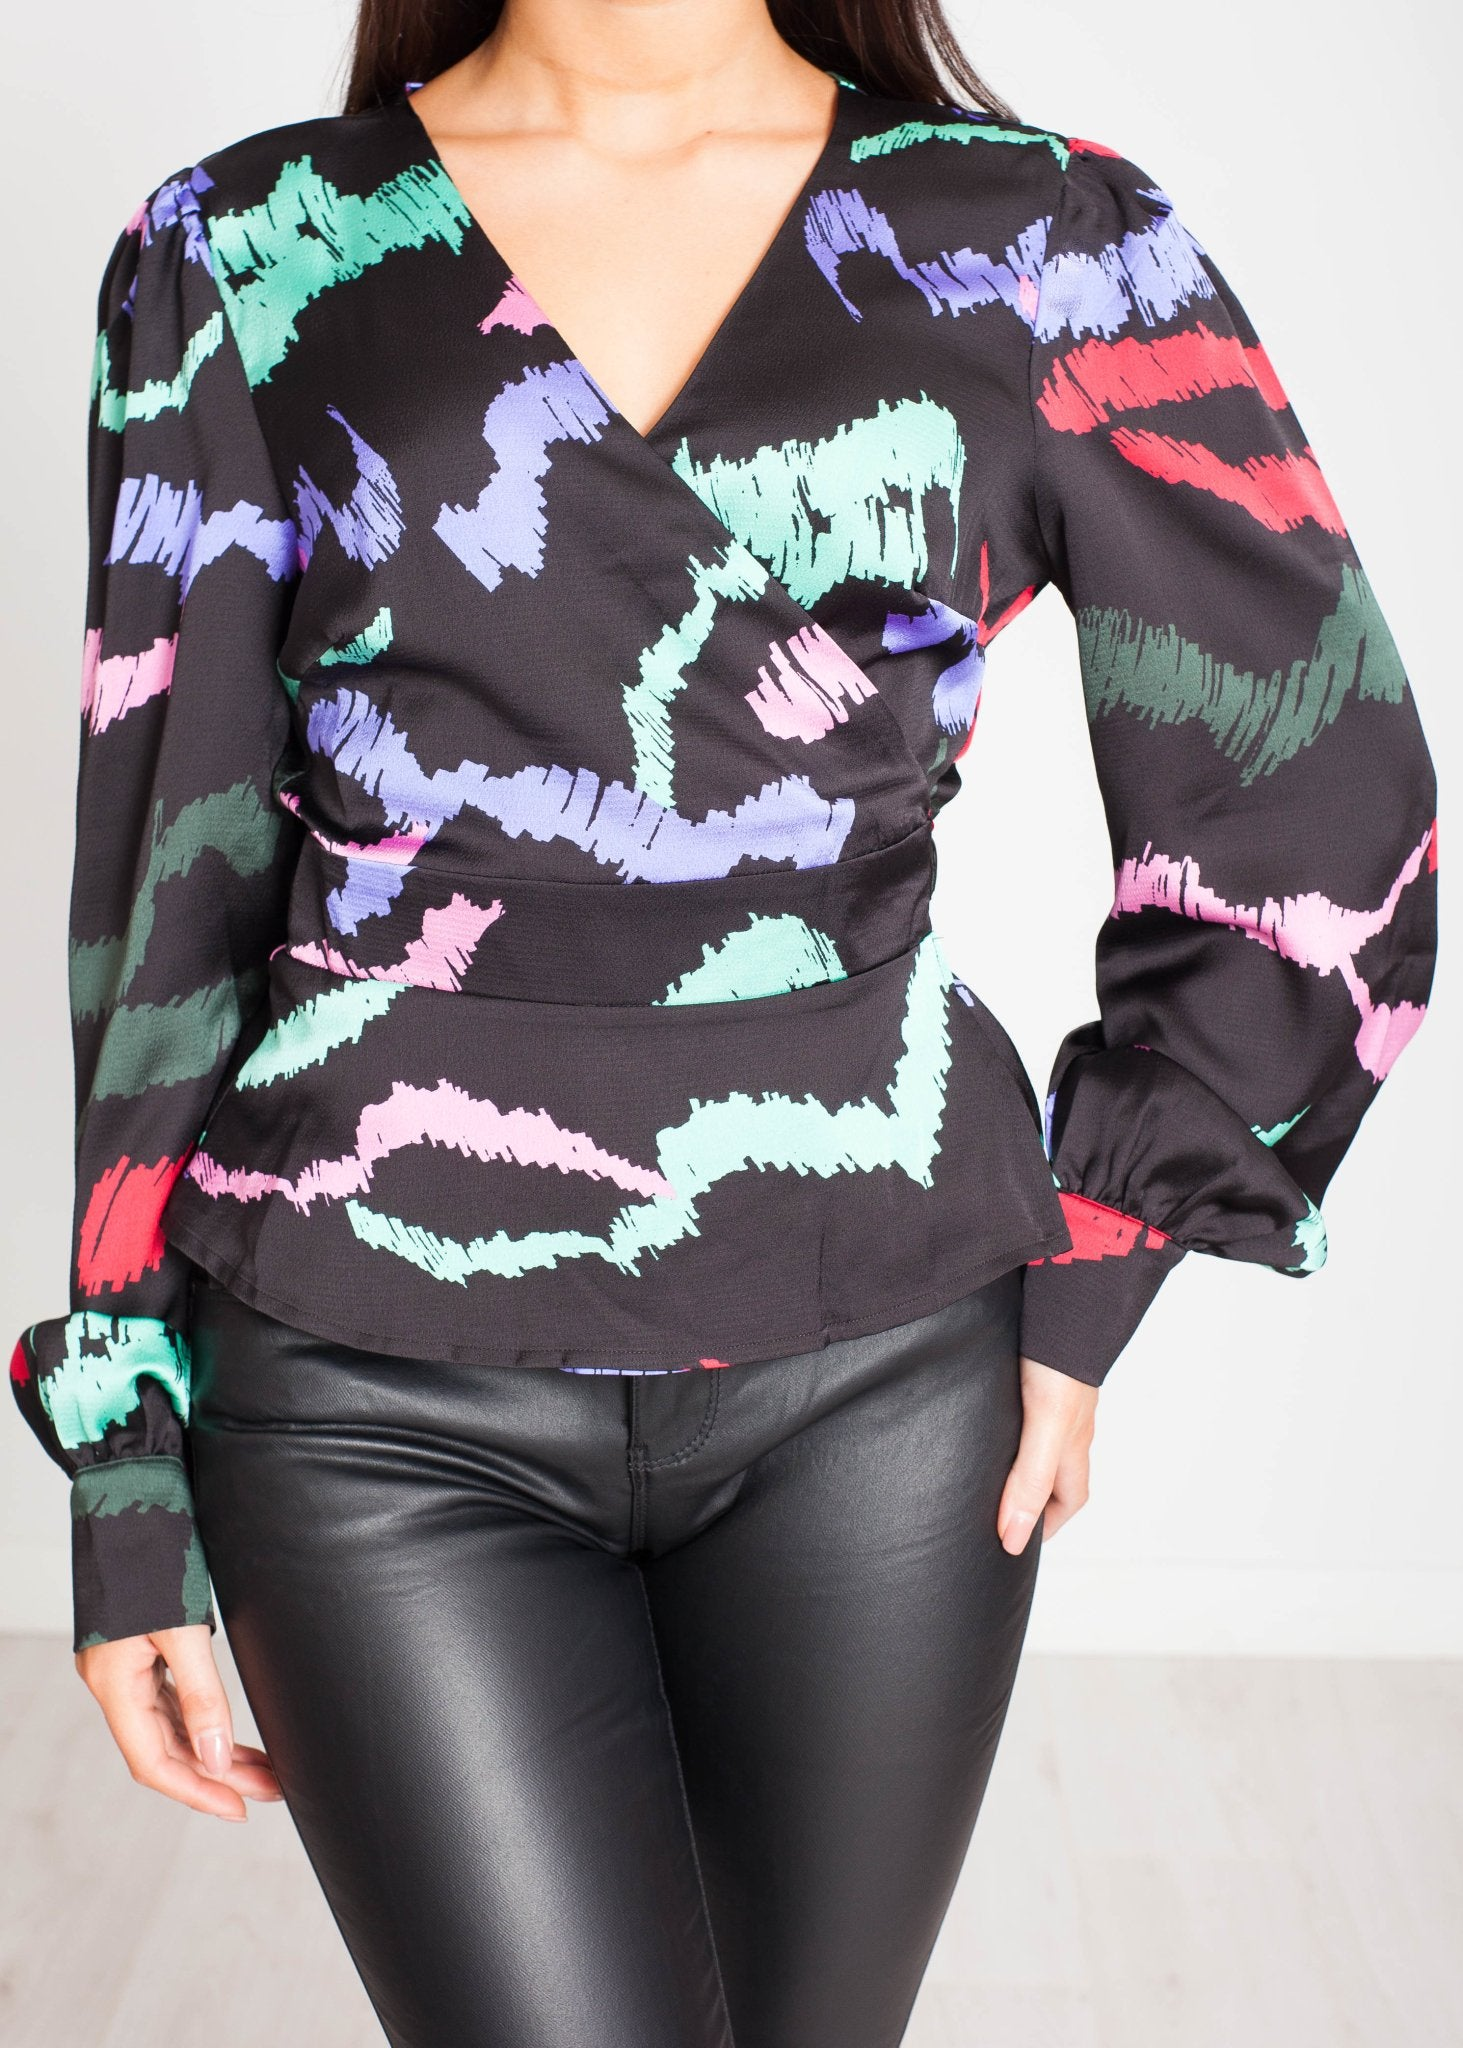 Lilly Wrap Blouse In Black Multi - The Walk in Wardrobe